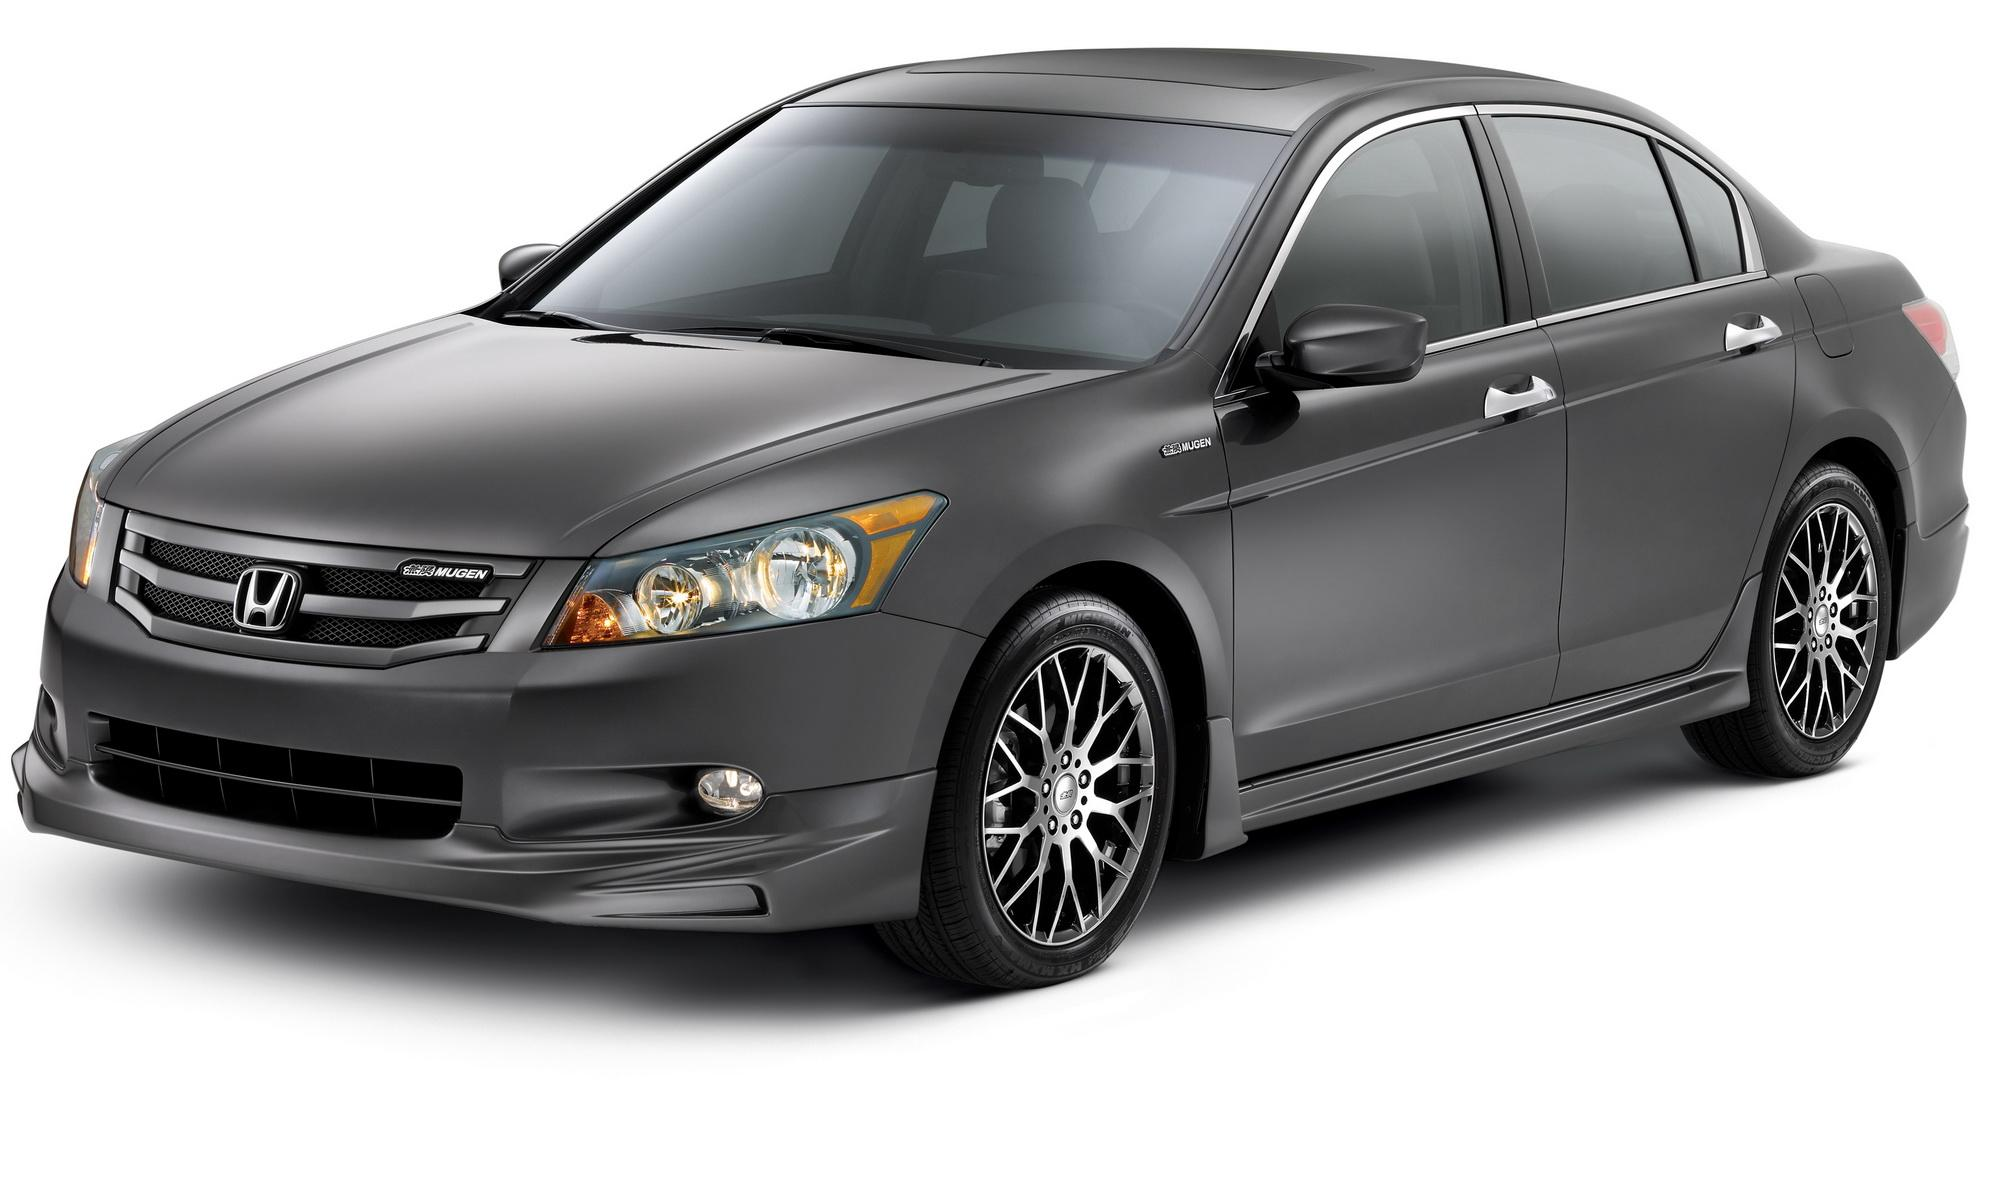 2009 honda accord sedan by mugen review top speed for All black honda accord